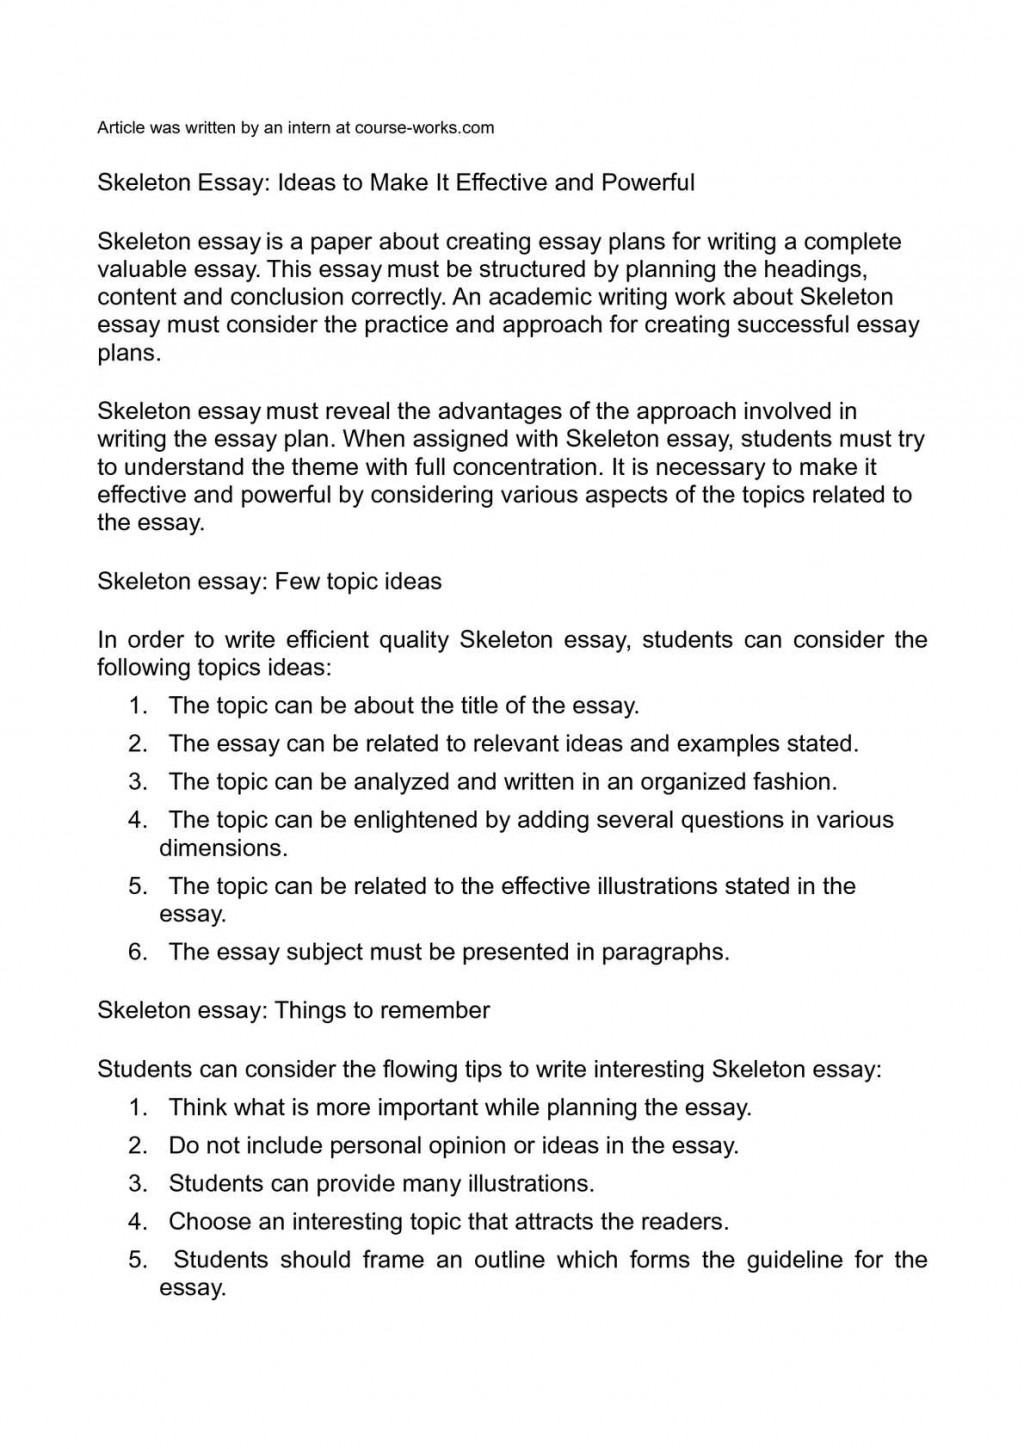 016 Research Paper P1 Easy Sensational Topic Questions For Psychology Topics Science Biology Large